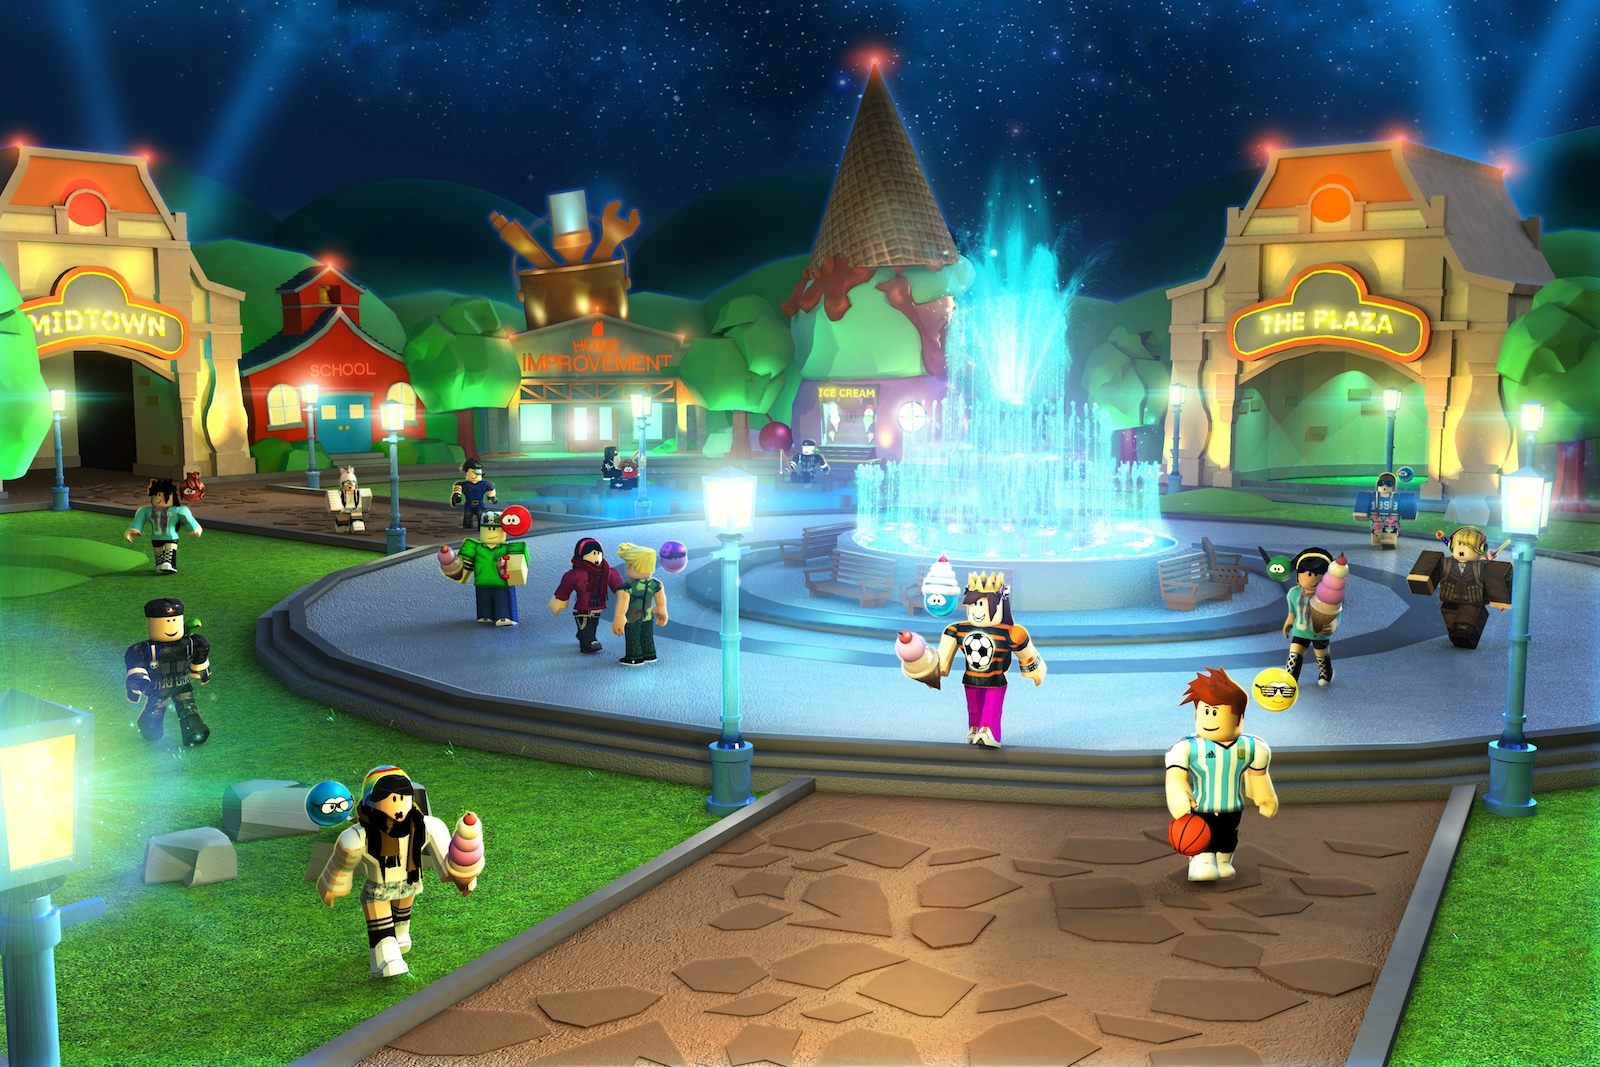 Hobbyist developers will make $30 million via 'Roblox ...